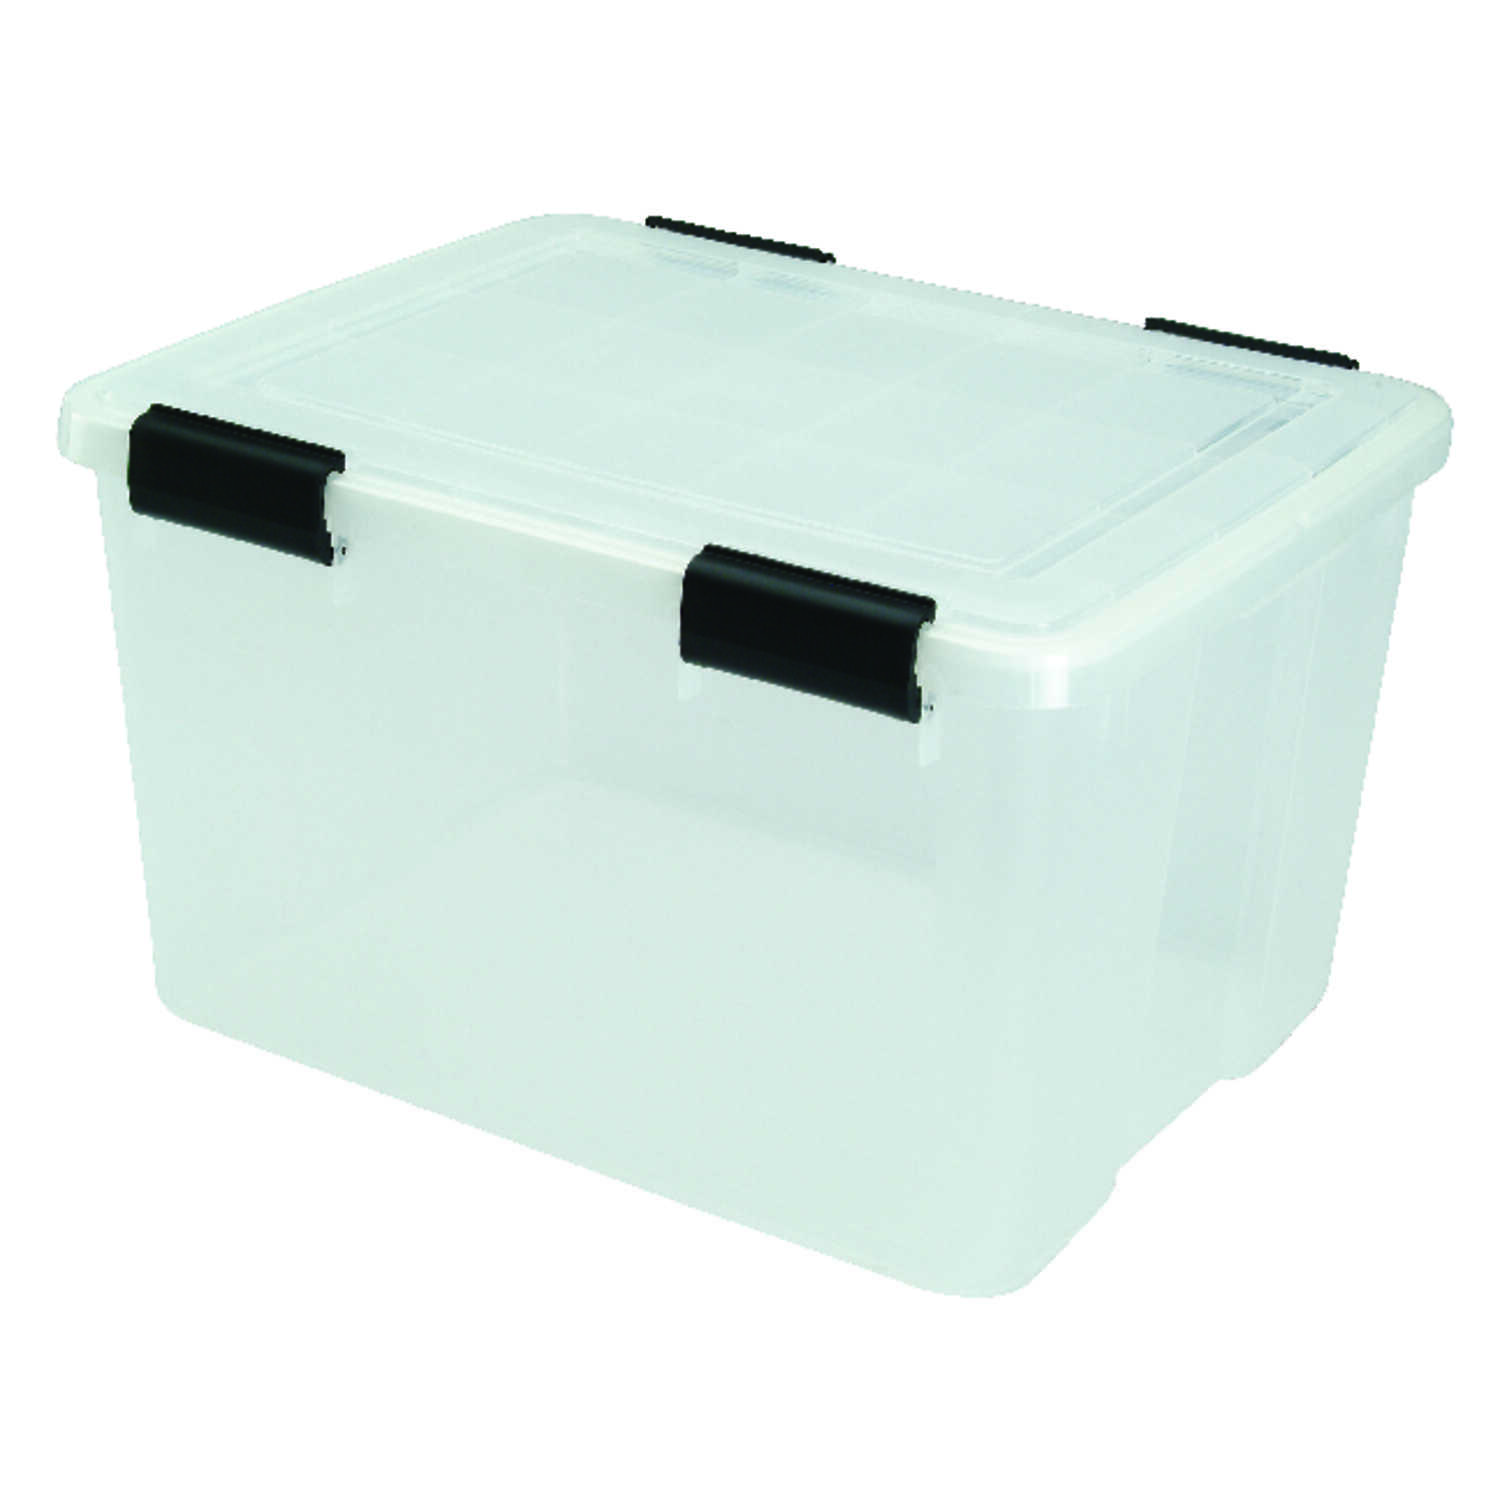 Iris  WEATHERTIGHT  11.7 in. H x 19.7 in. D x 15.7 in. W Stackable Storage Box